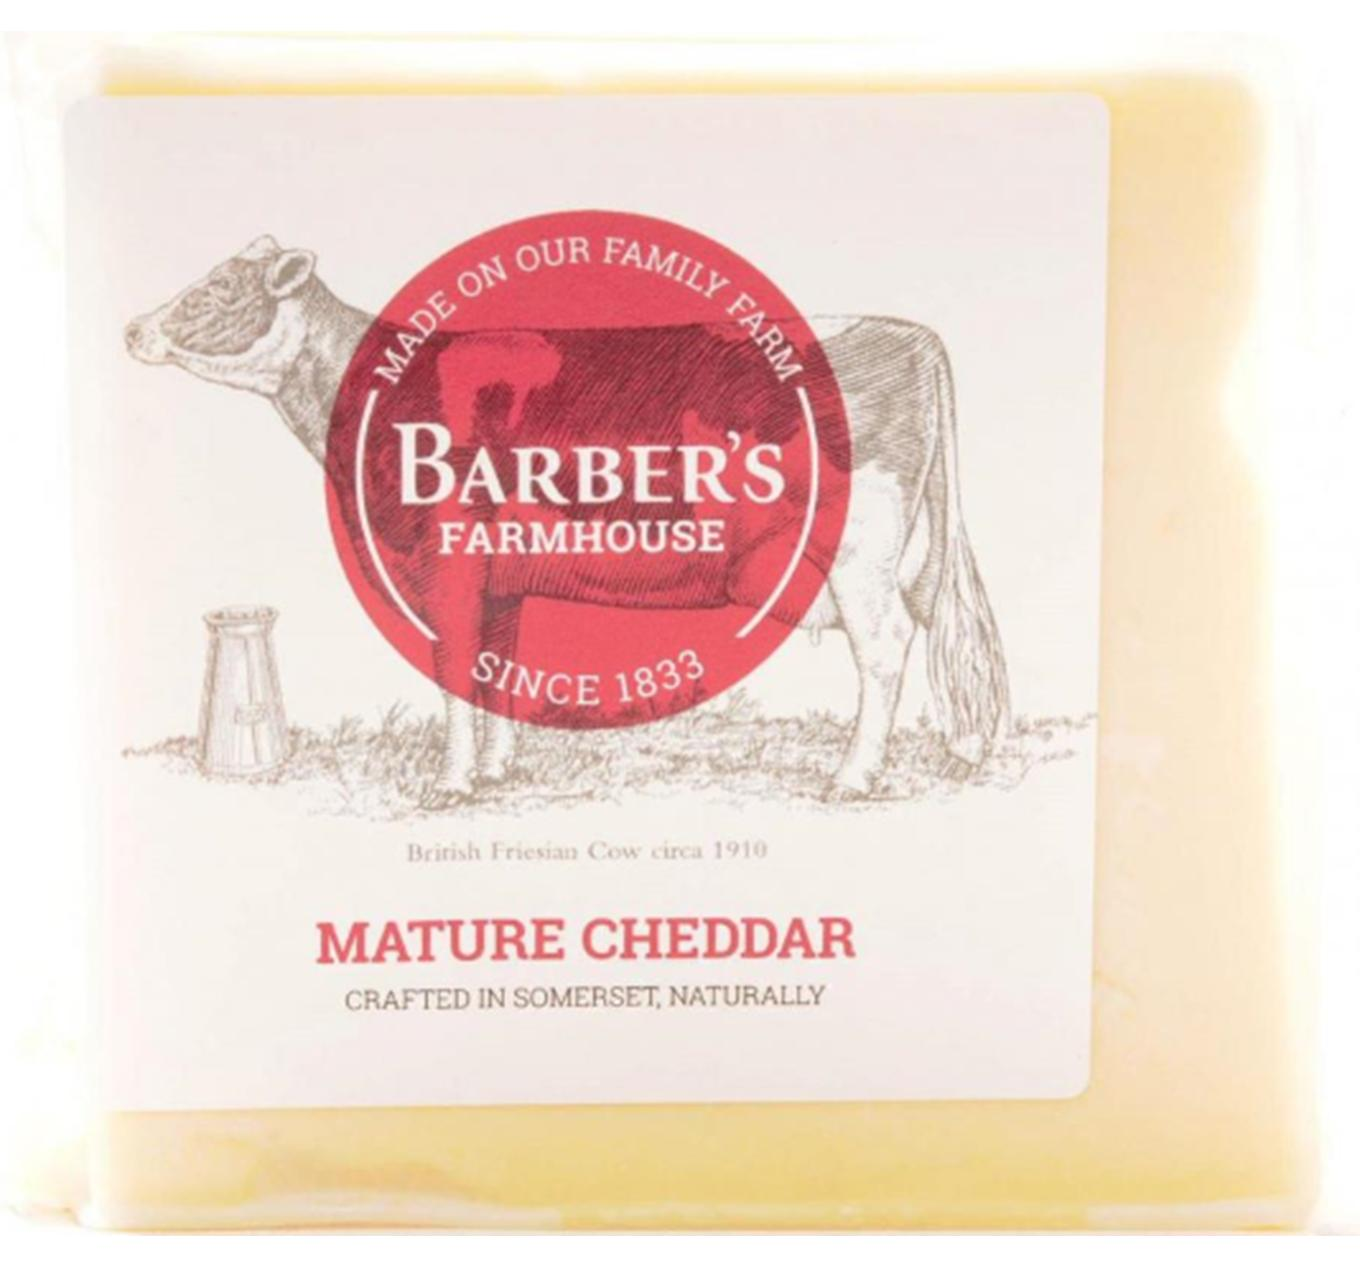 Farmhouse Mature Cheddar 320g